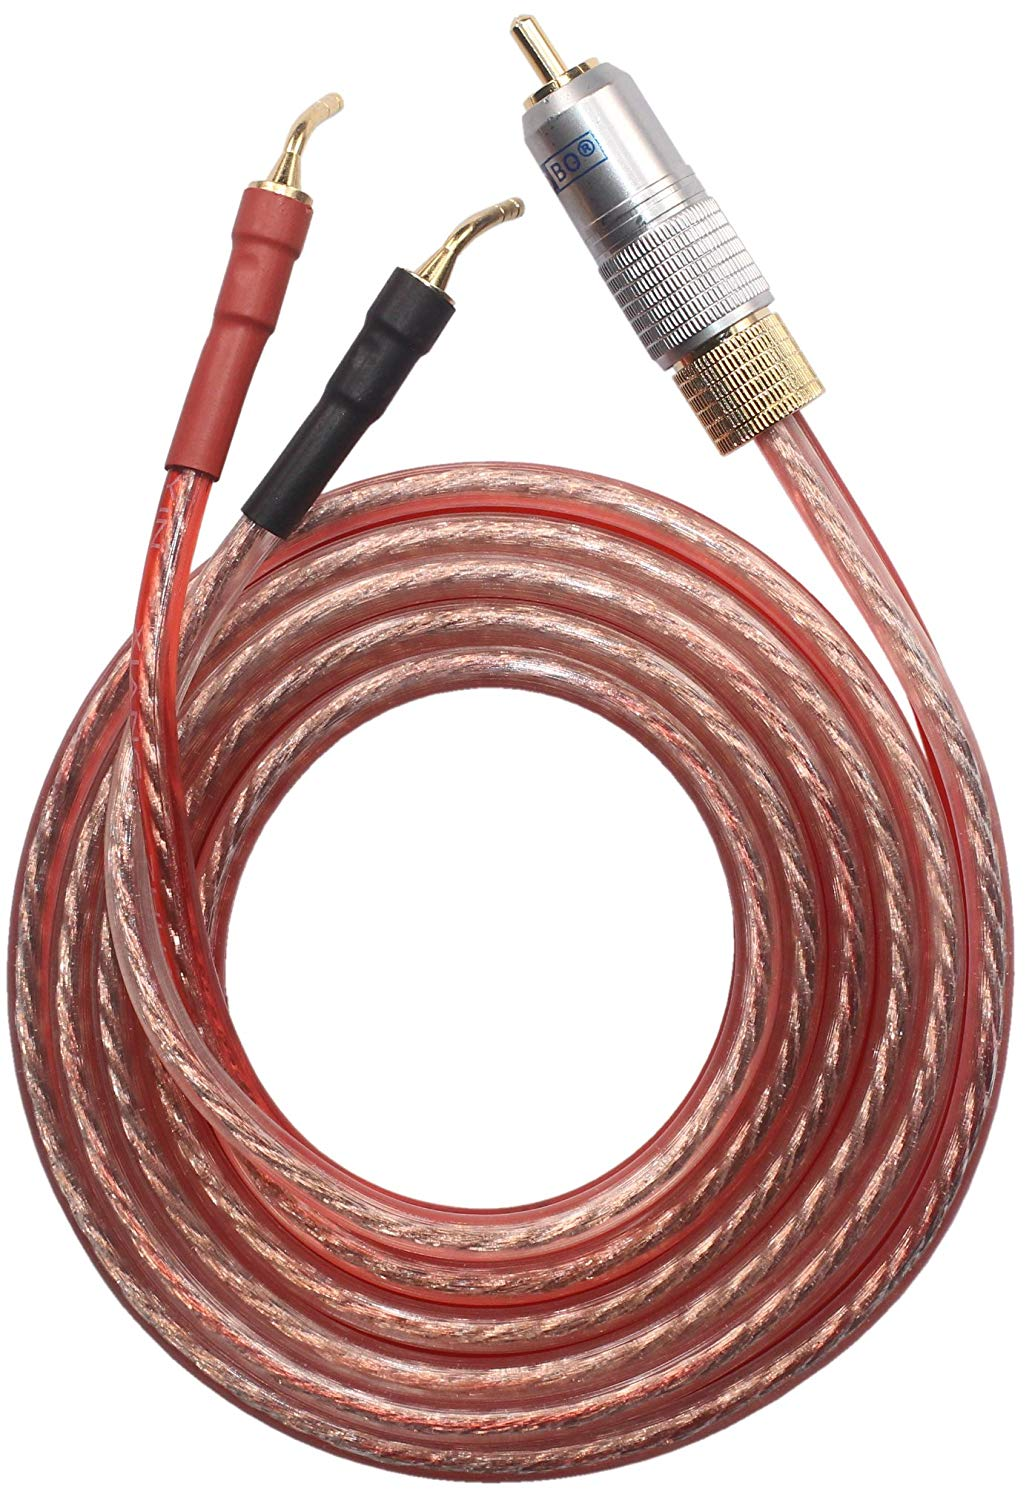 Cheap Rca Plugs For Speaker Wire, find Rca Plugs For Speaker